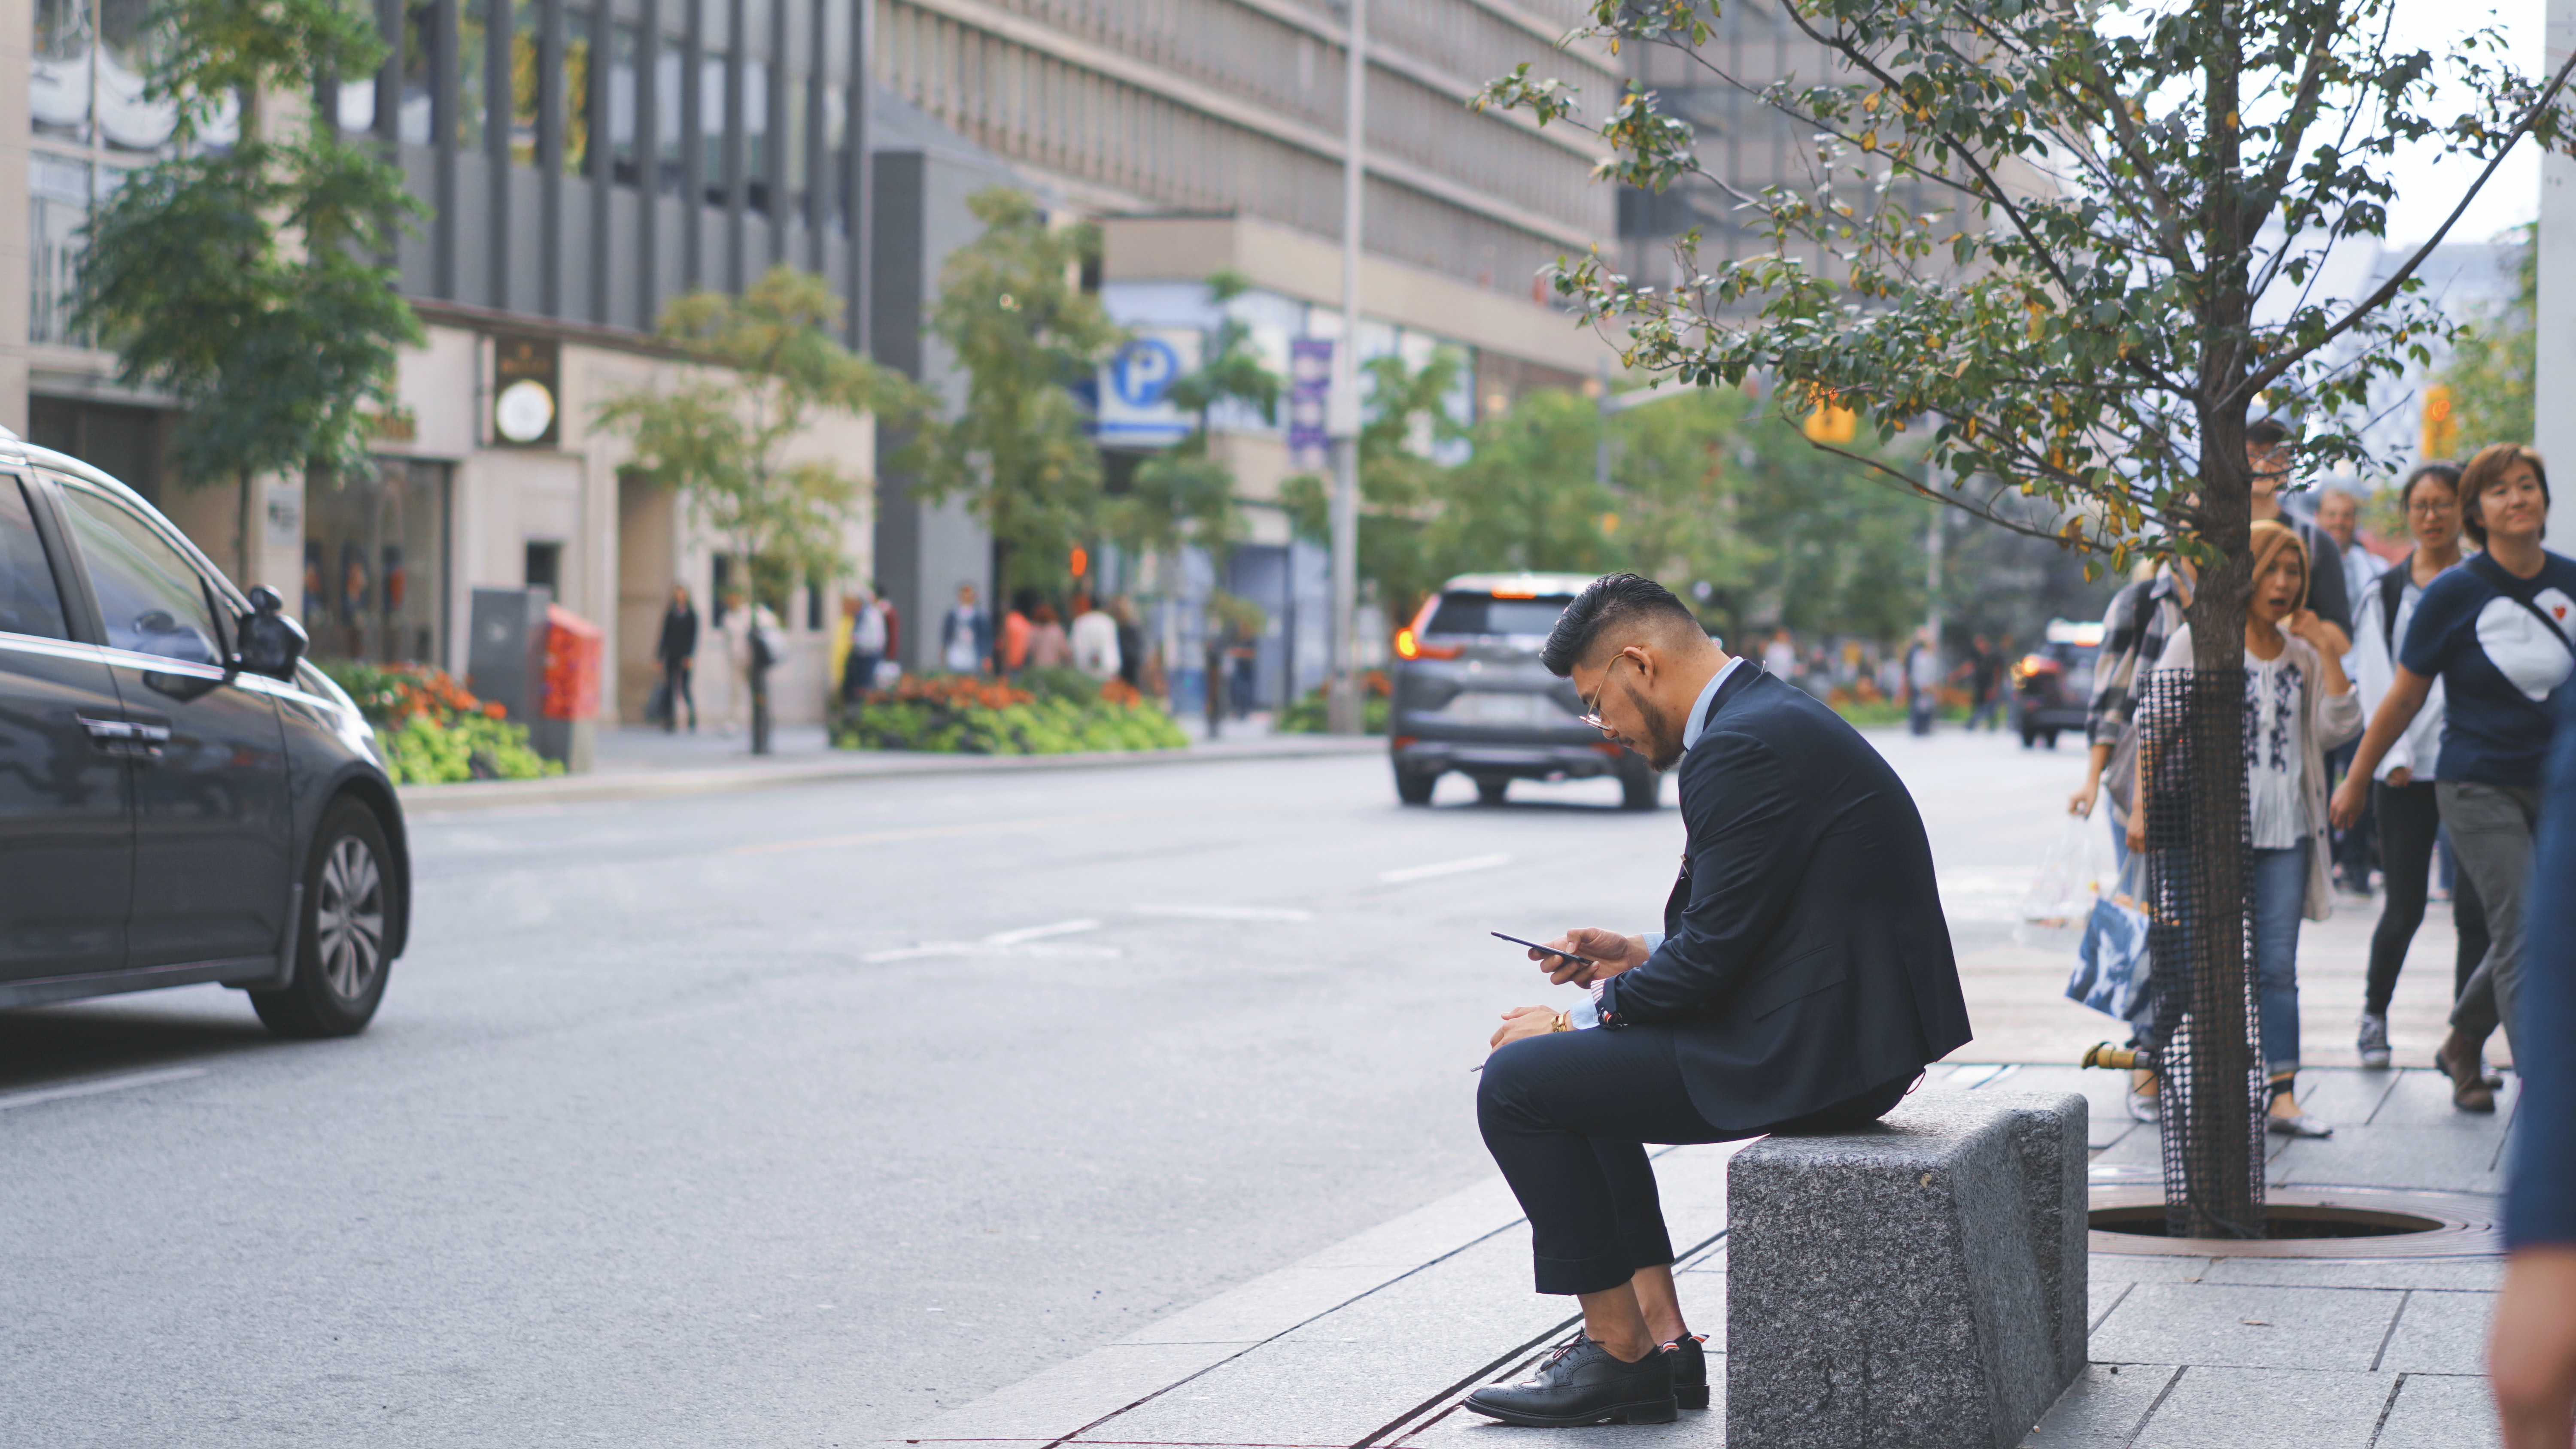 man with suit jacket sitting next to street with passing cars